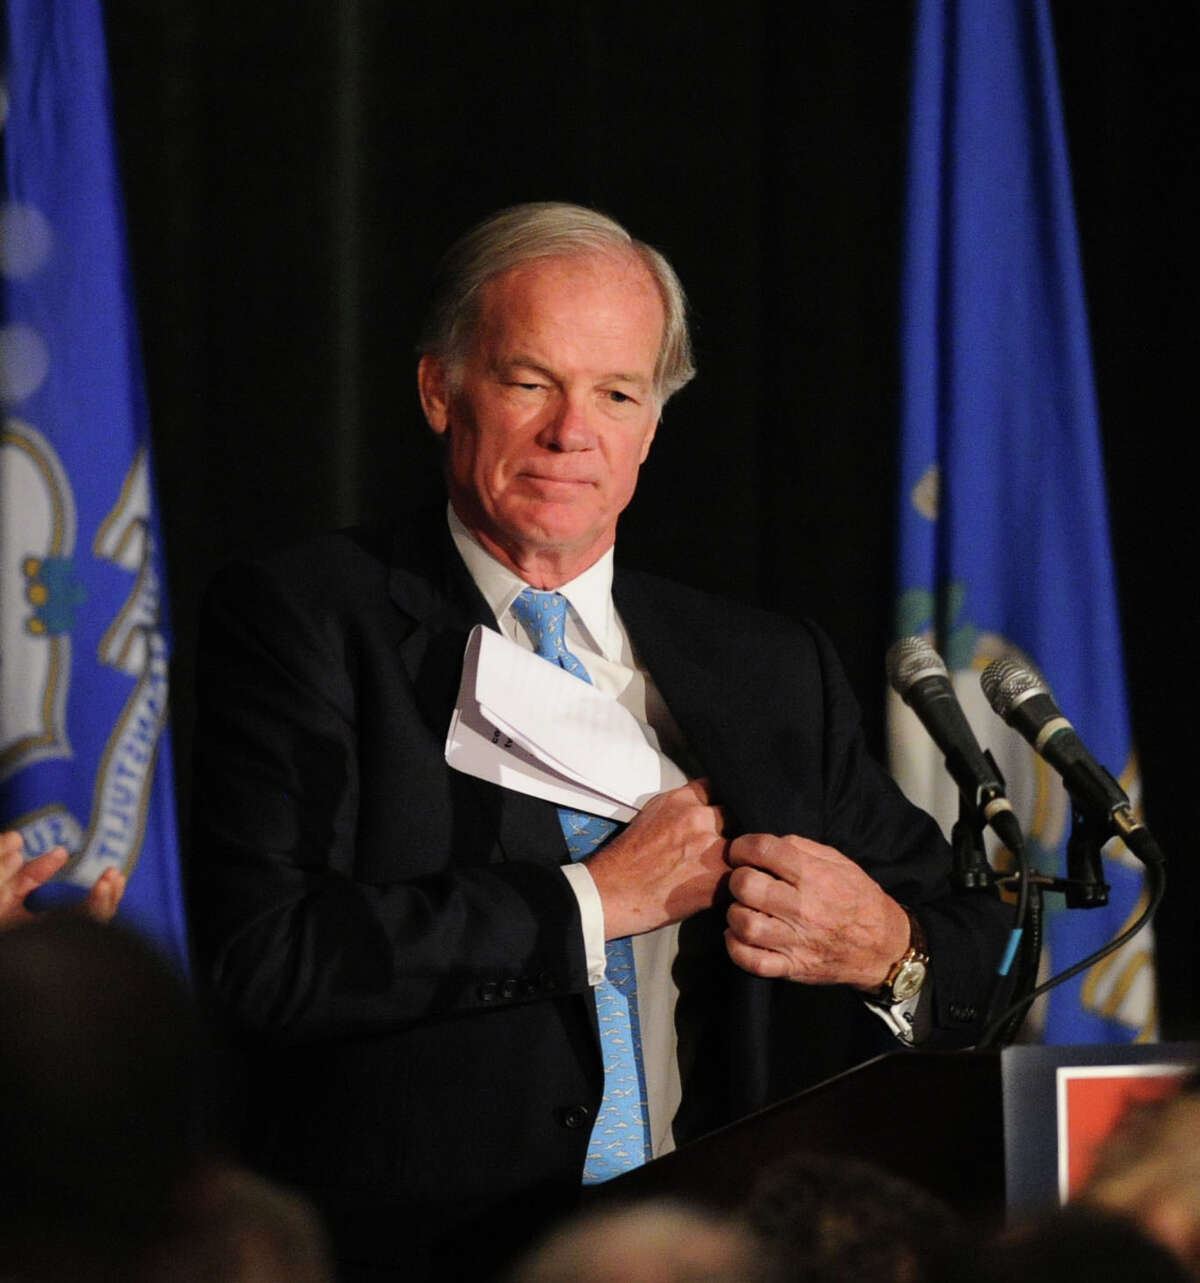 Republican candidate for Governor, Tom Foley, puts his speech back into his jacket pocket after speaking to supporters on election night at the Hyatt Regency Greenwich, Conn., Wednesday, Nov. 5, 2014.